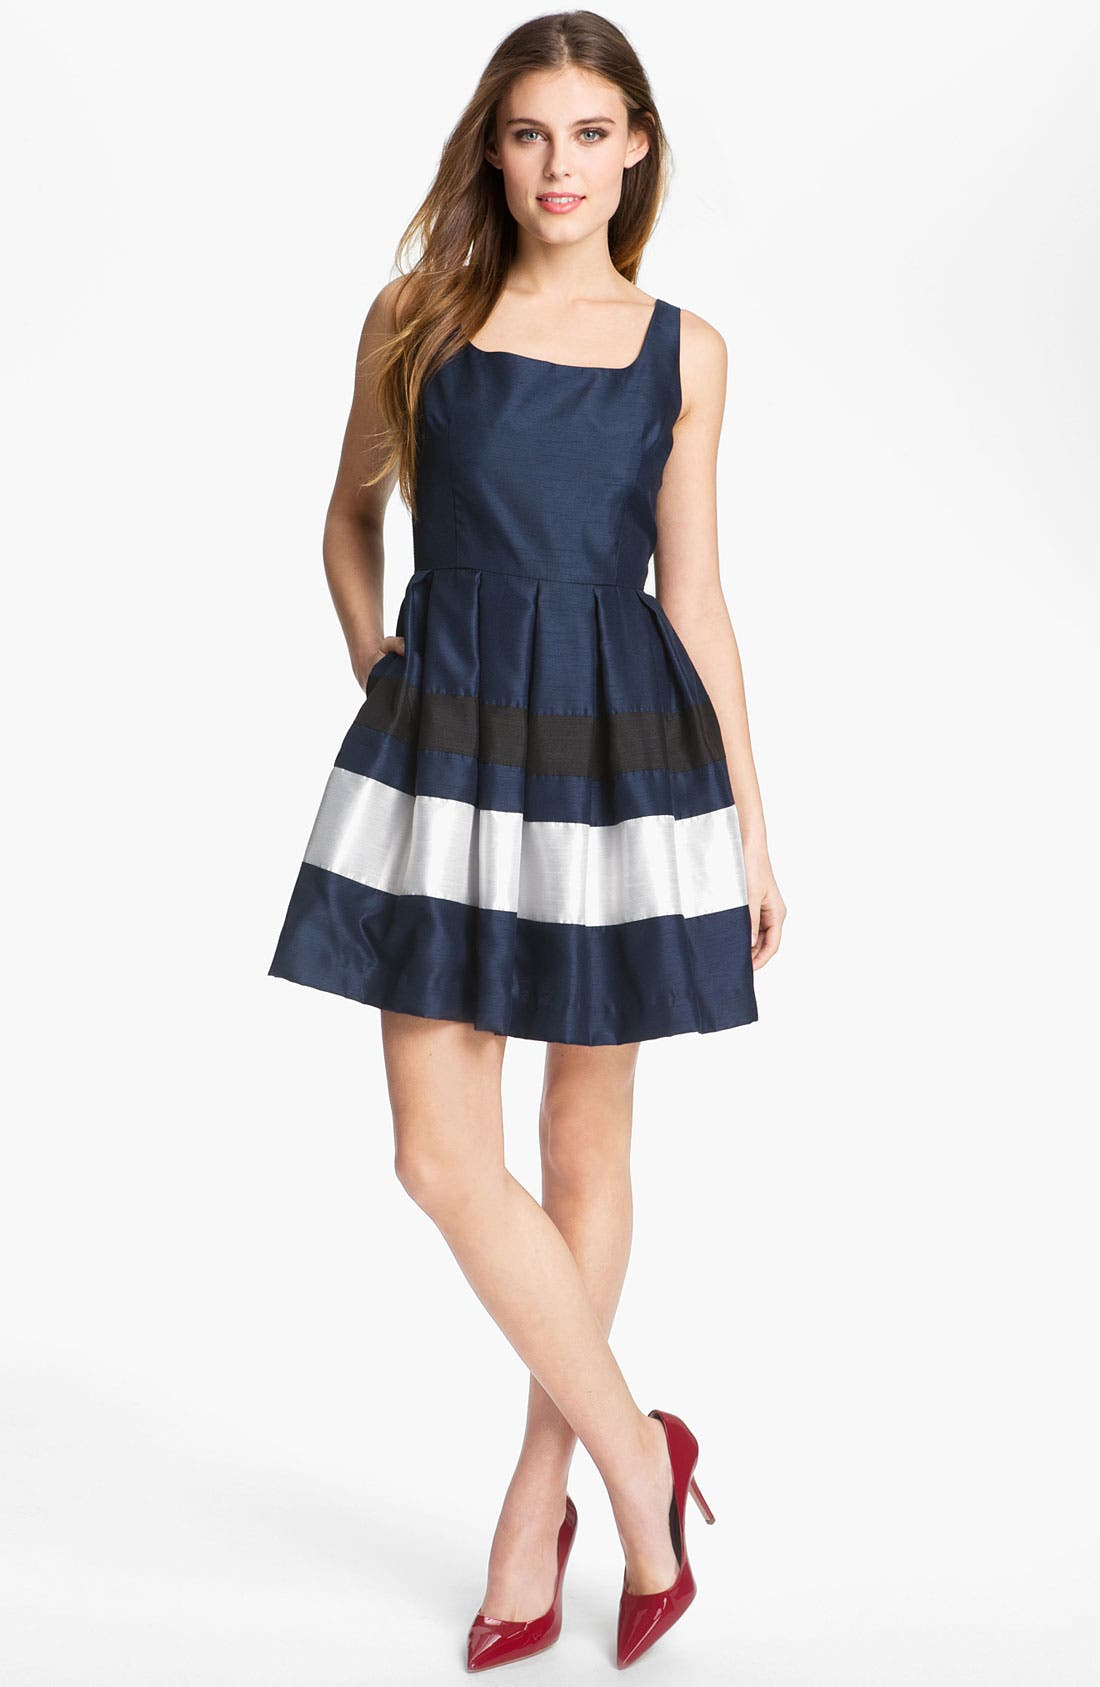 Alternate Image 1 Selected - Taylor Dresses Stripe Fit & Flare Dress